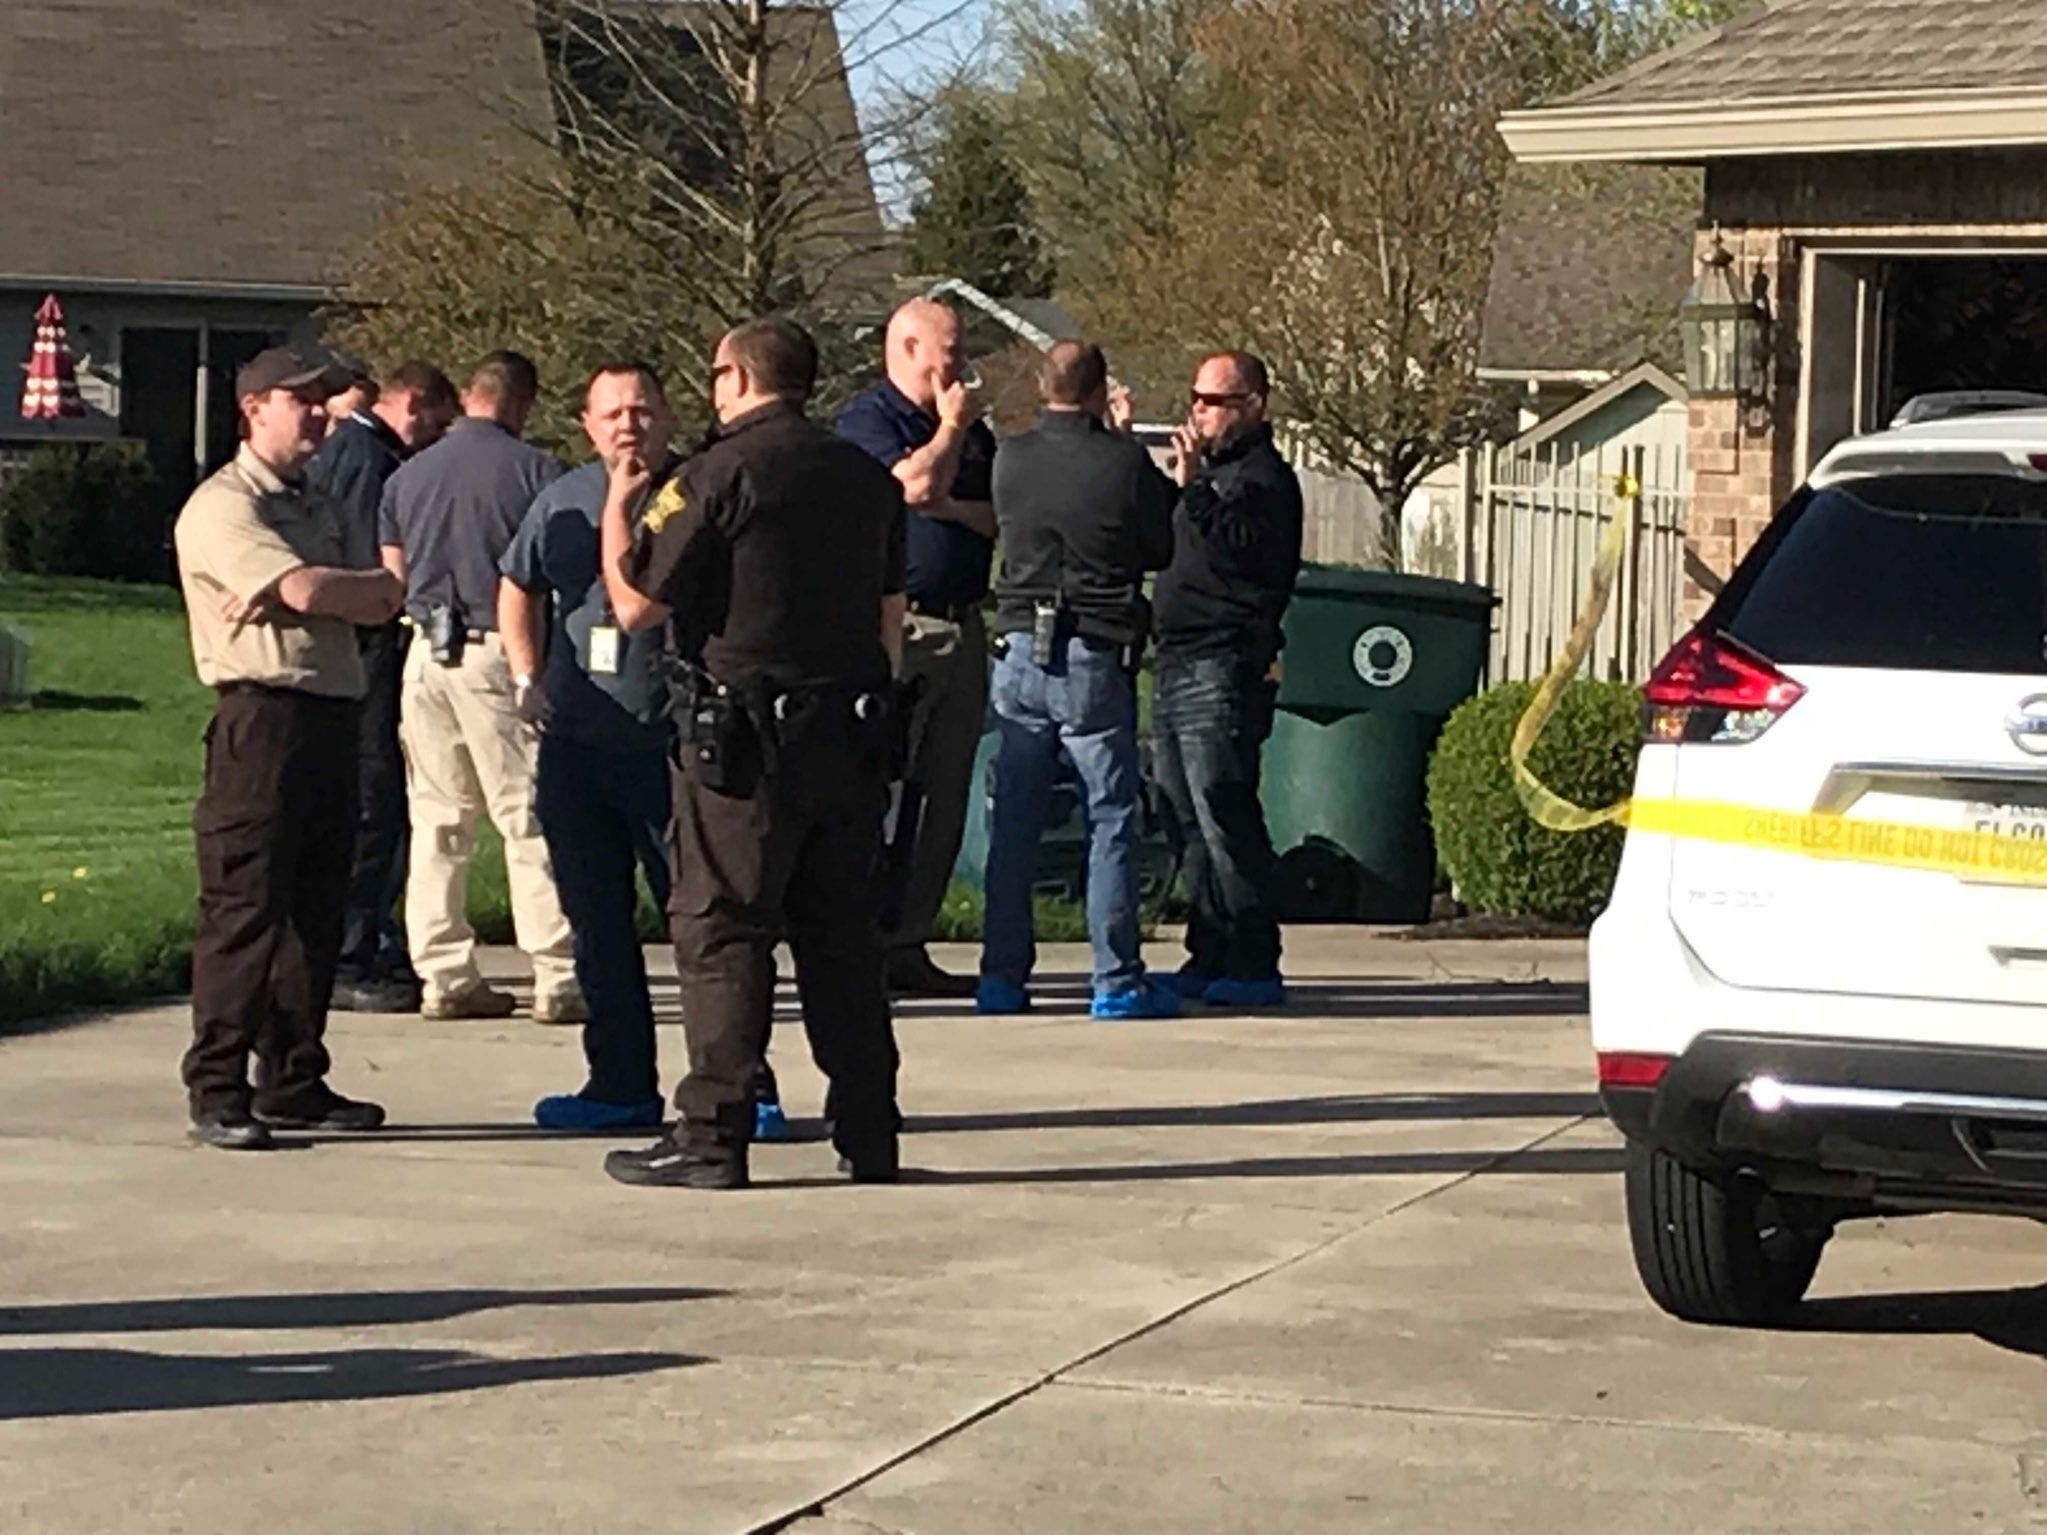 The scene at a home in the 5000 block of Timothy Way in Muncie, where authorities investigate a reported murder-suicide on Sunday, April 28.